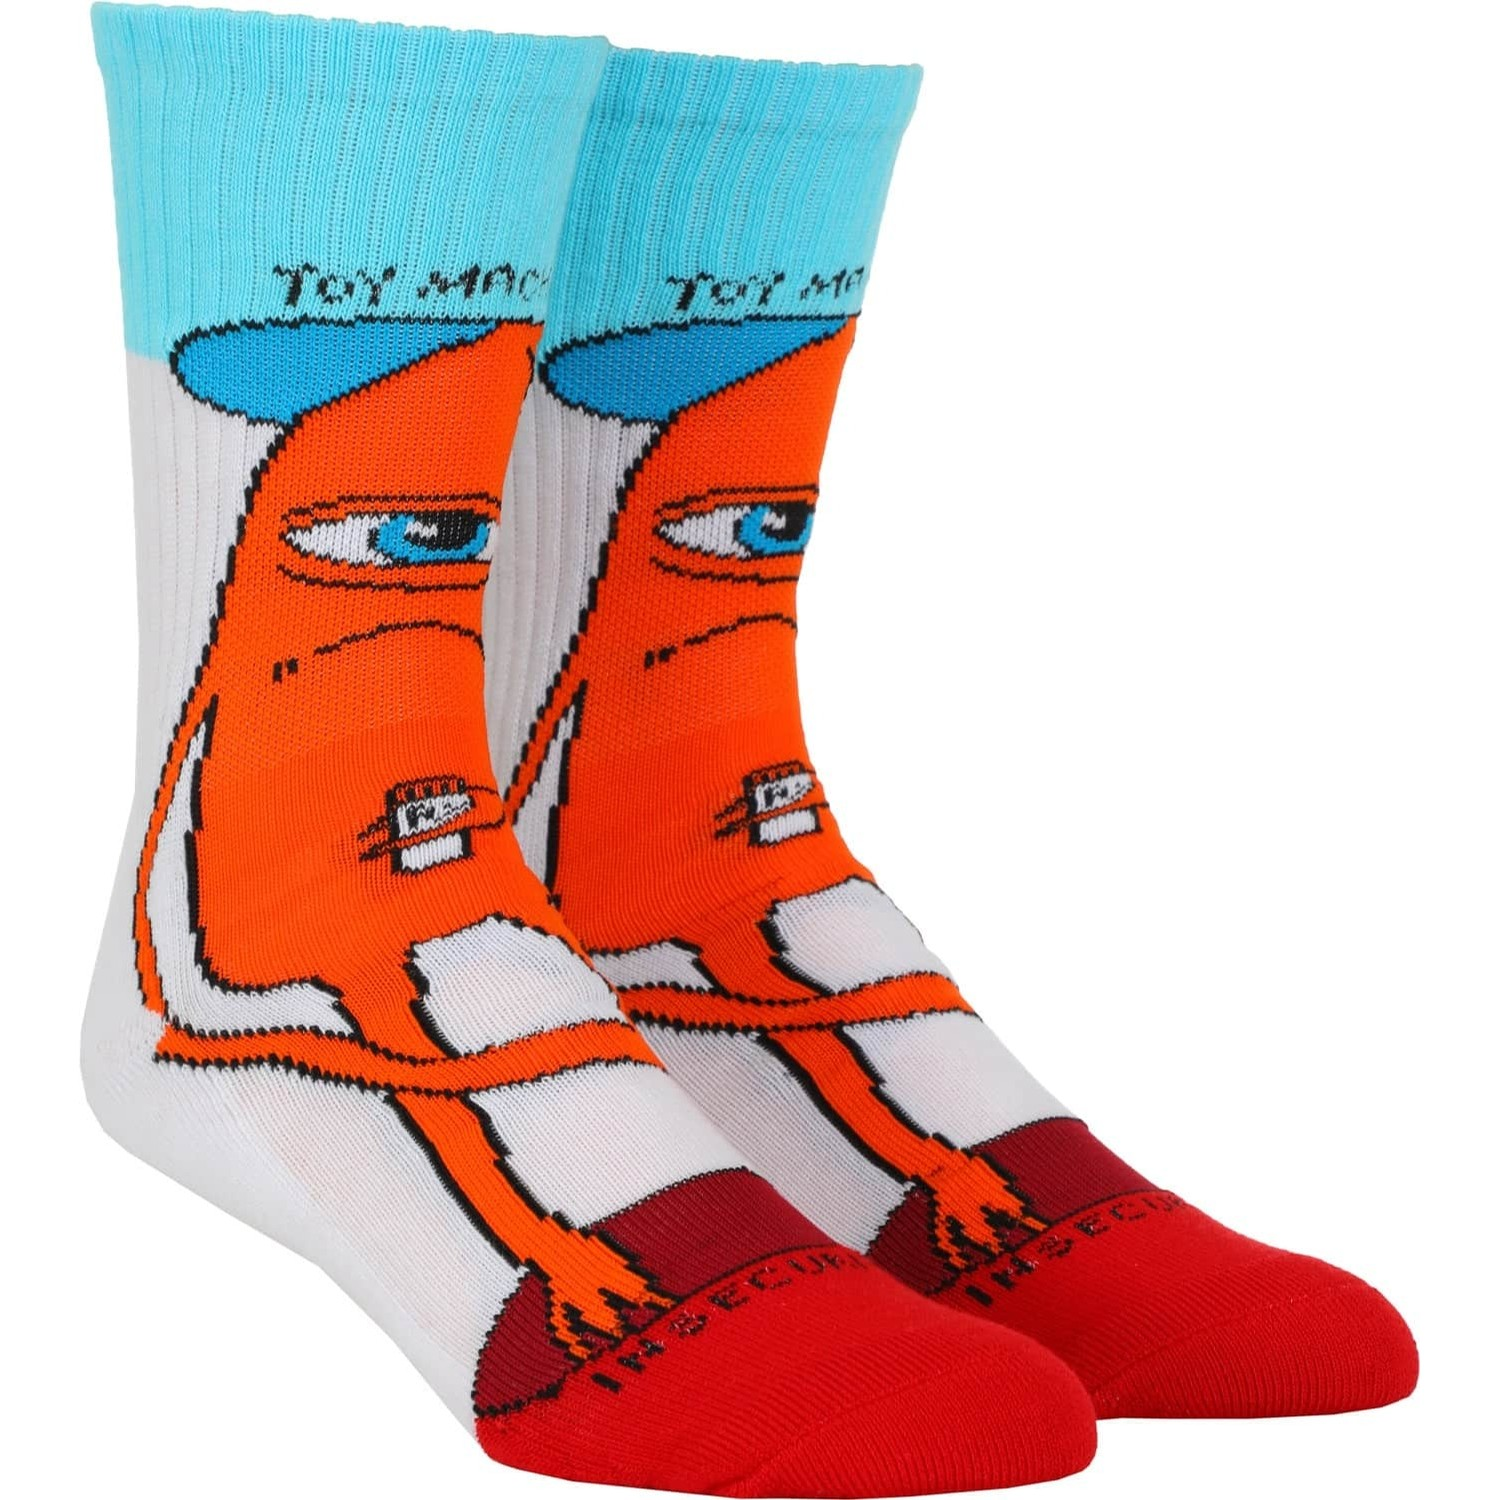 Insecurity Crew Sock